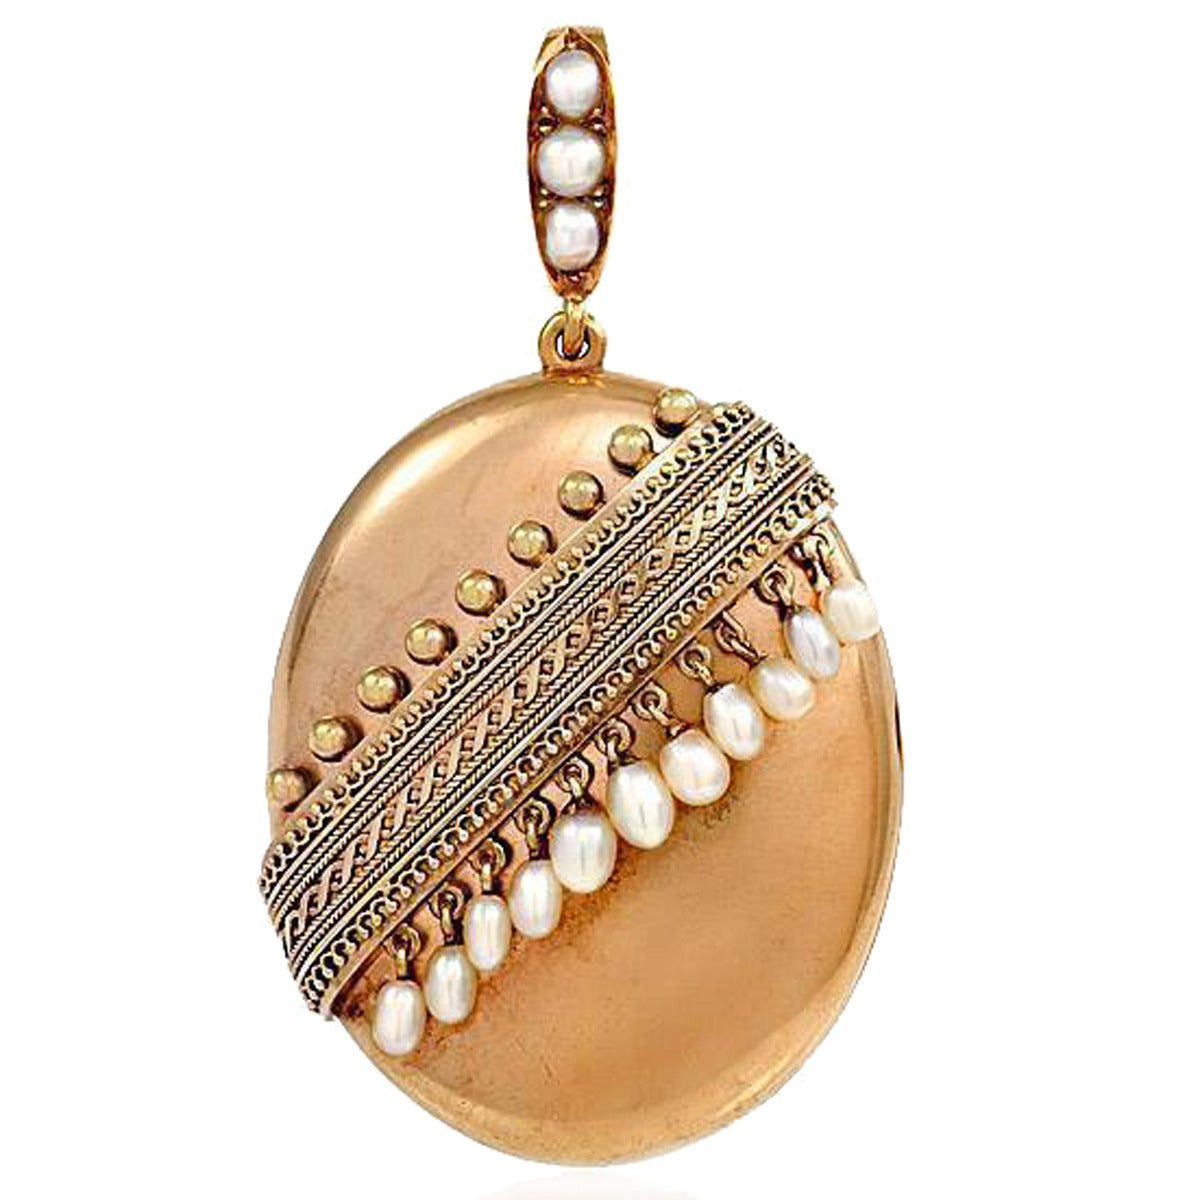 Antique Gold Locket with Pearl Fringe